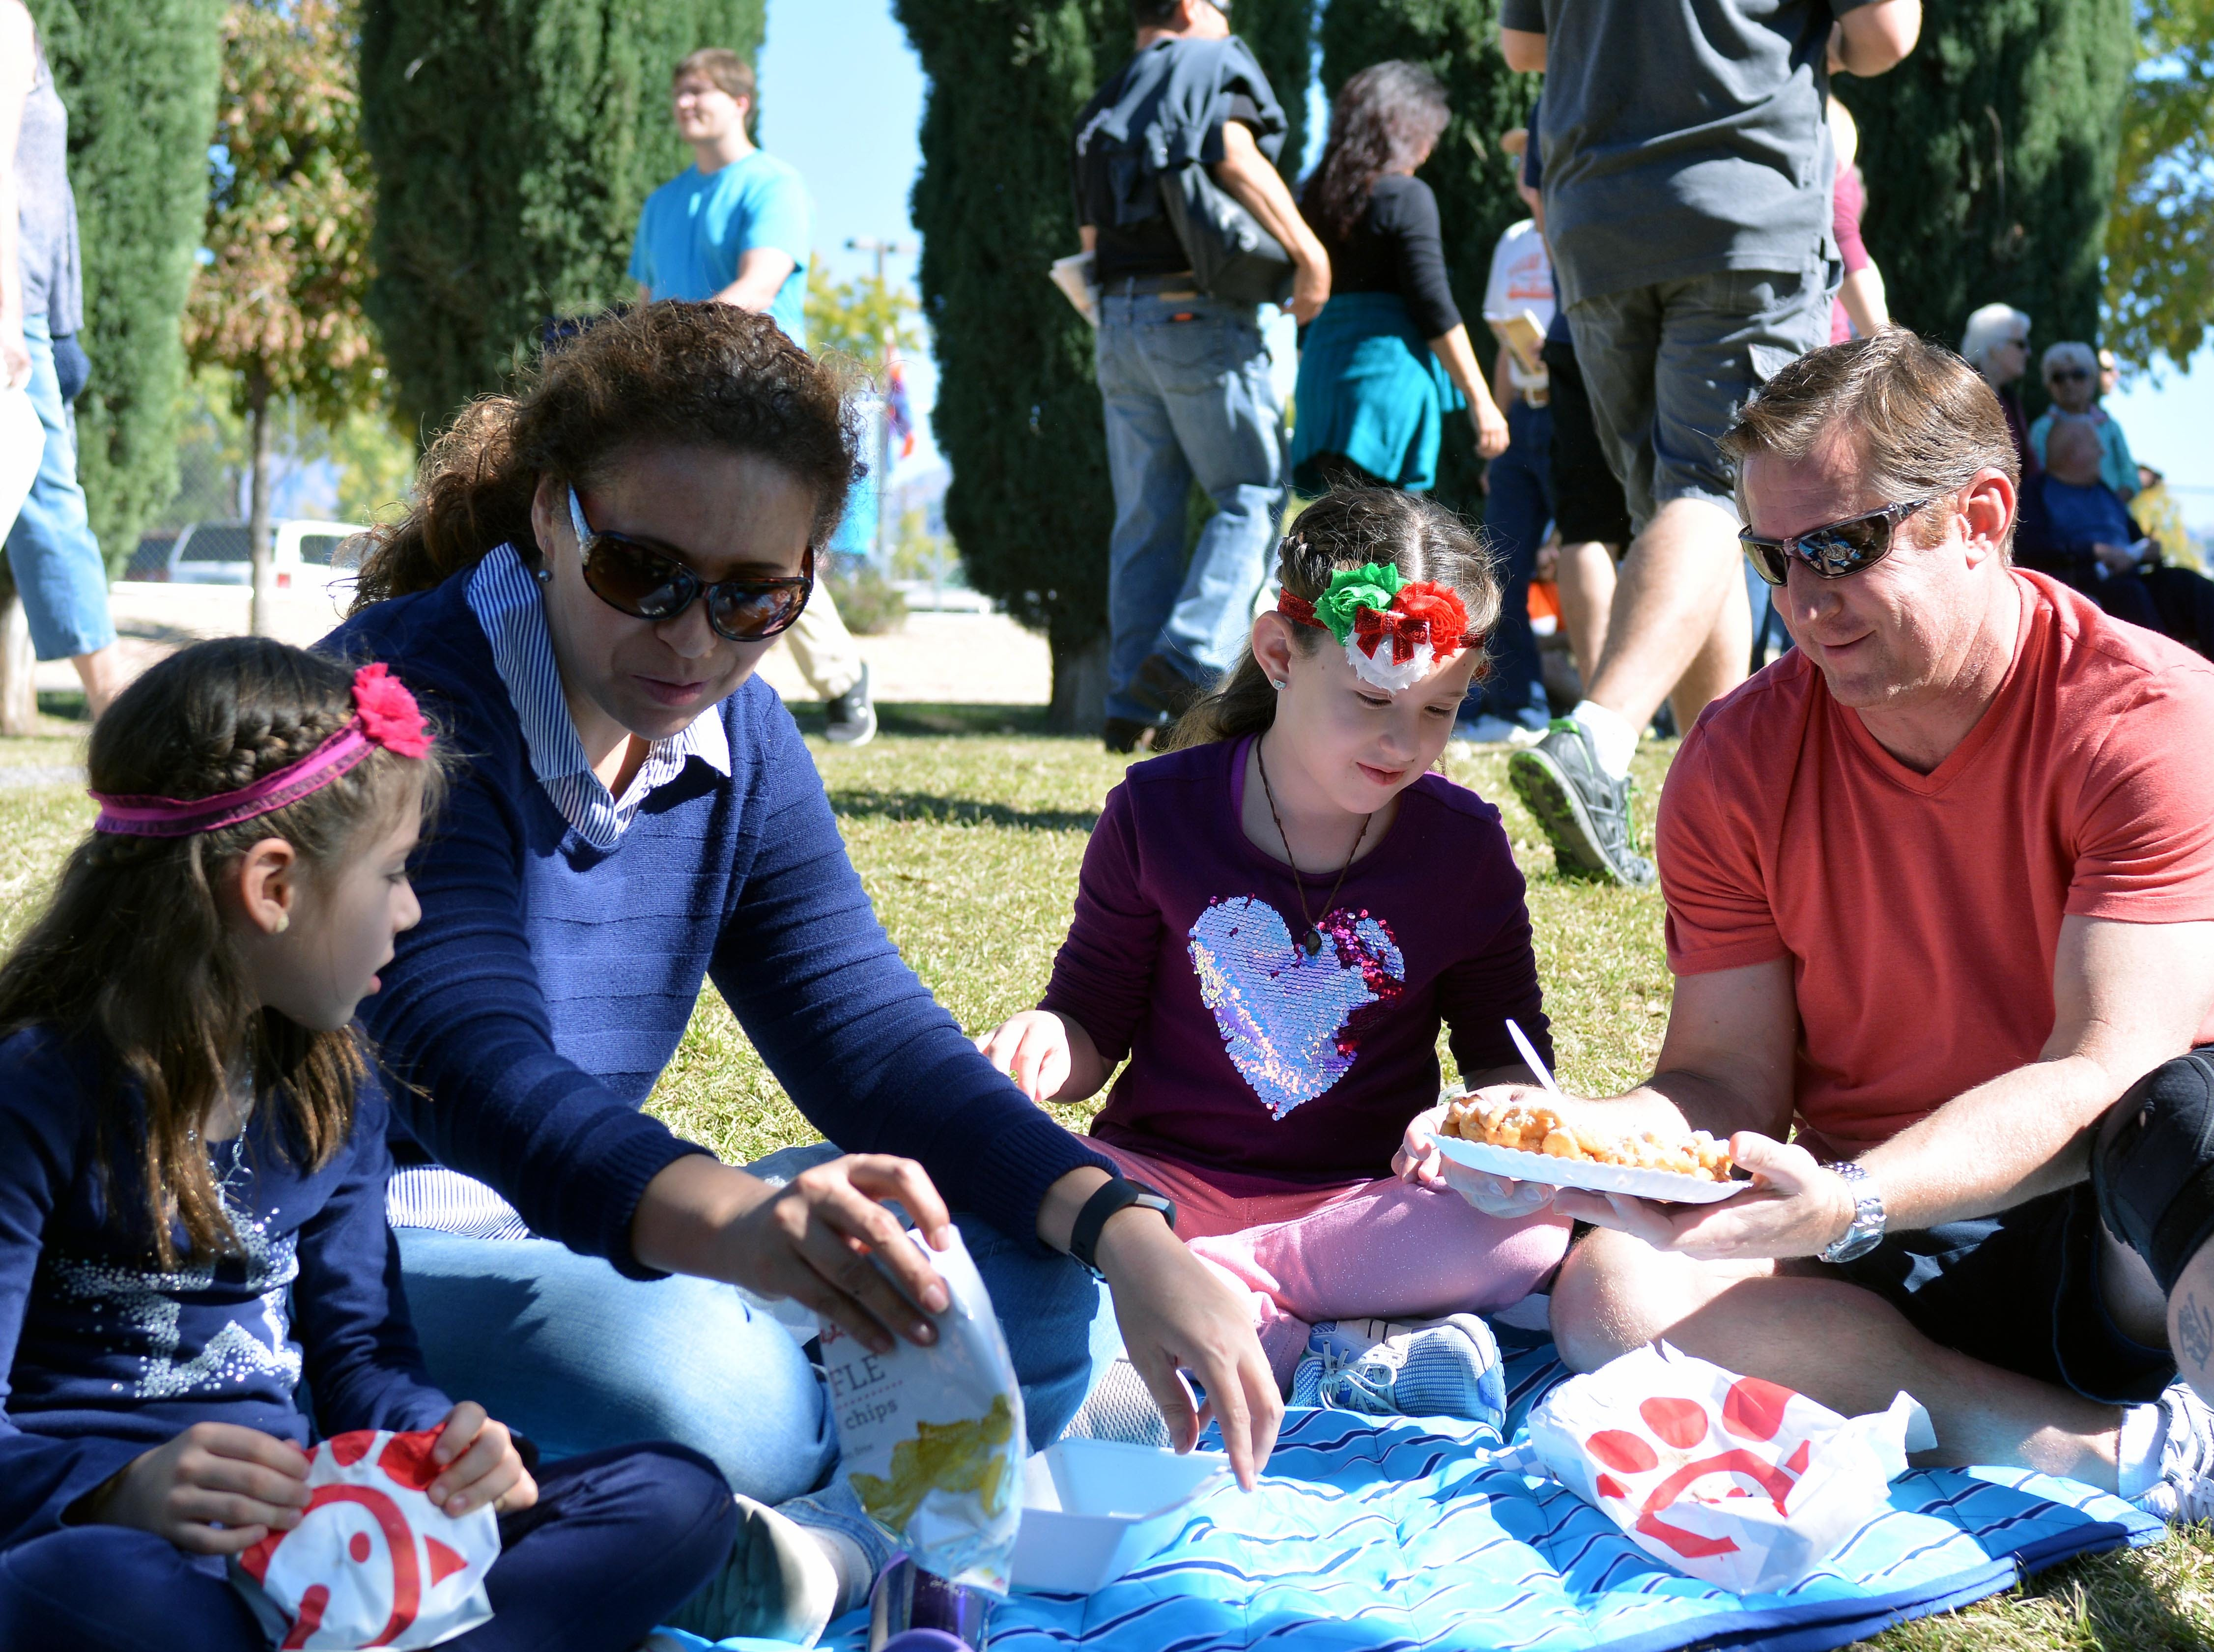 The Haubner family (left to right: Marissa, Elizabeth, Arianna and Ken) from Las Cruces take in the sun and enjoy a funnel cake on Saturday afternoon.  Photo taken 11/3/18.